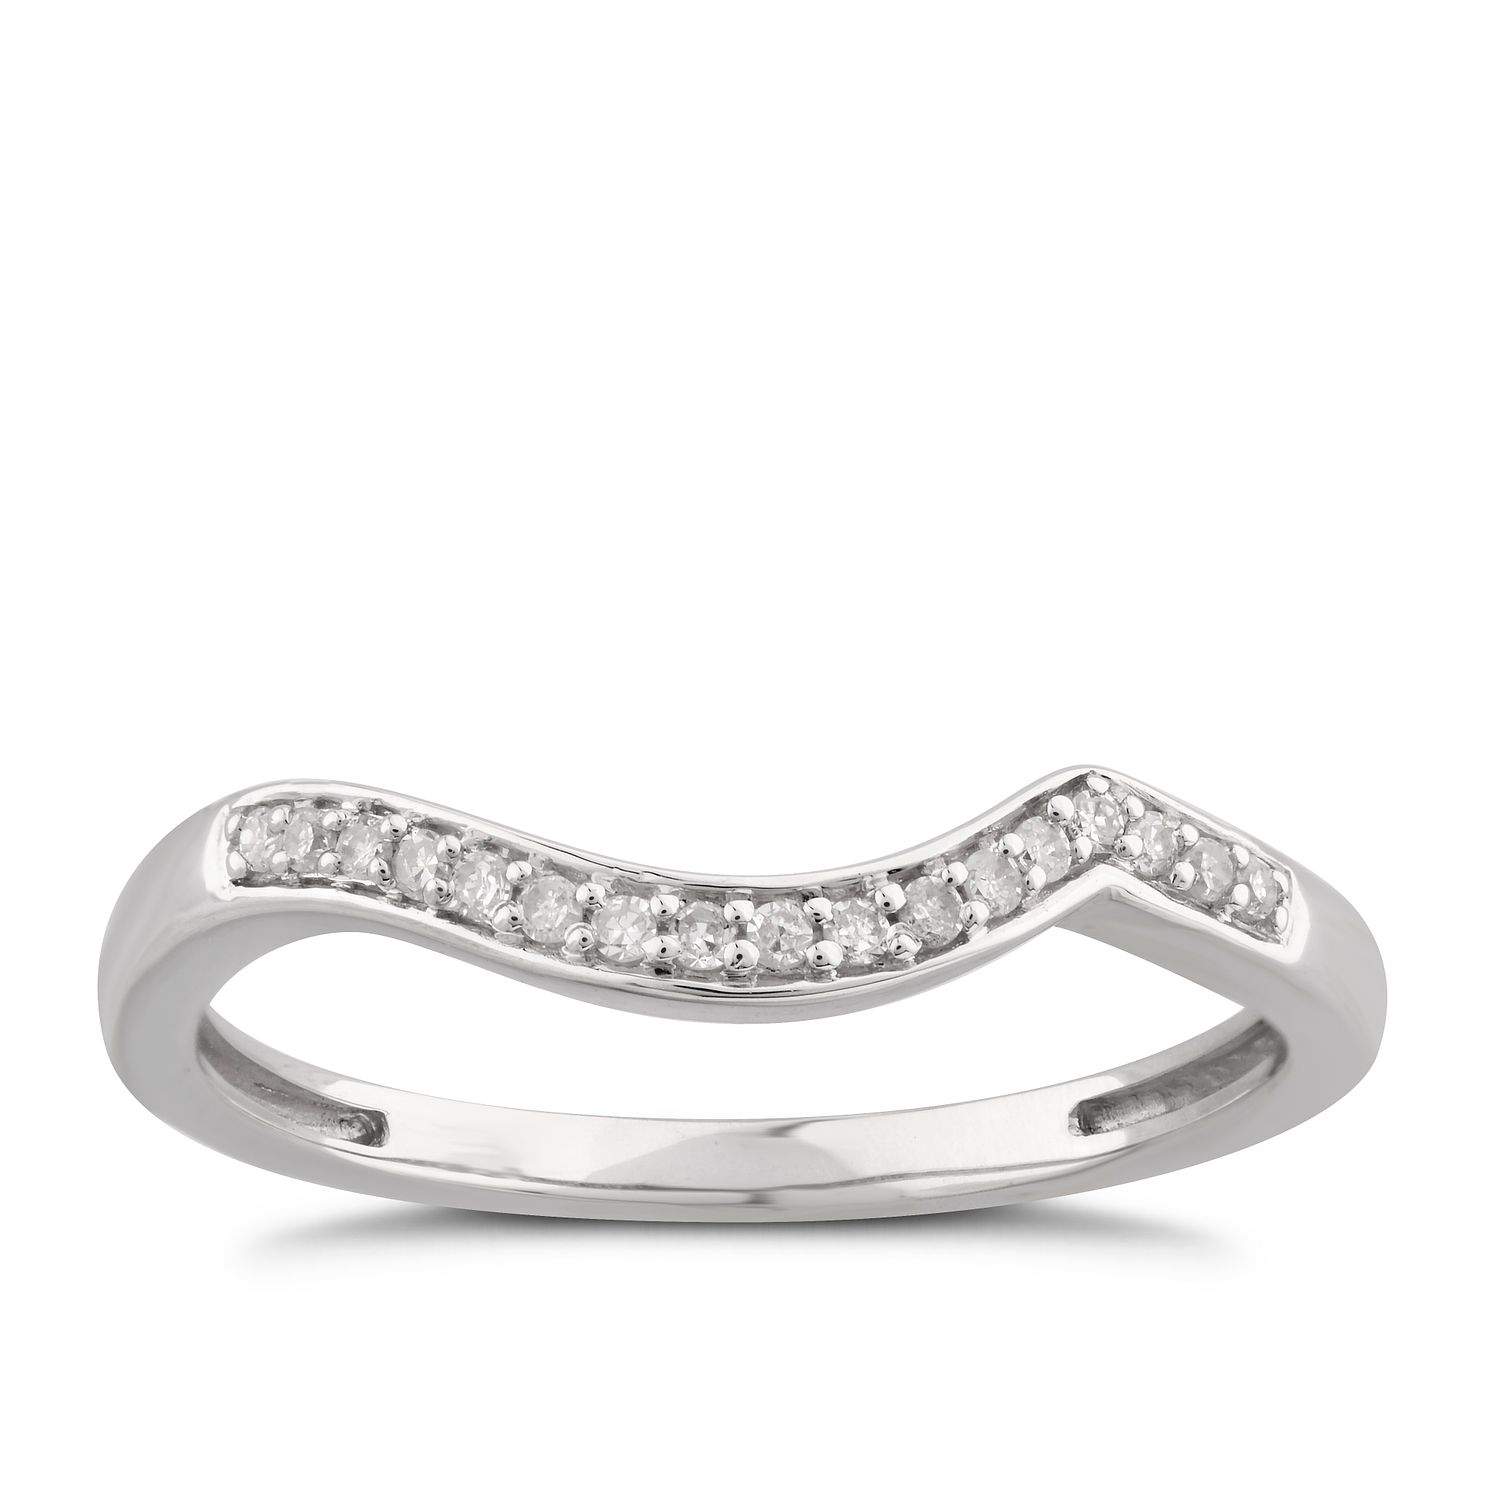 Perfect Fit 9ct White Gold Diamond Shaped Band Ring - Product number 6010571